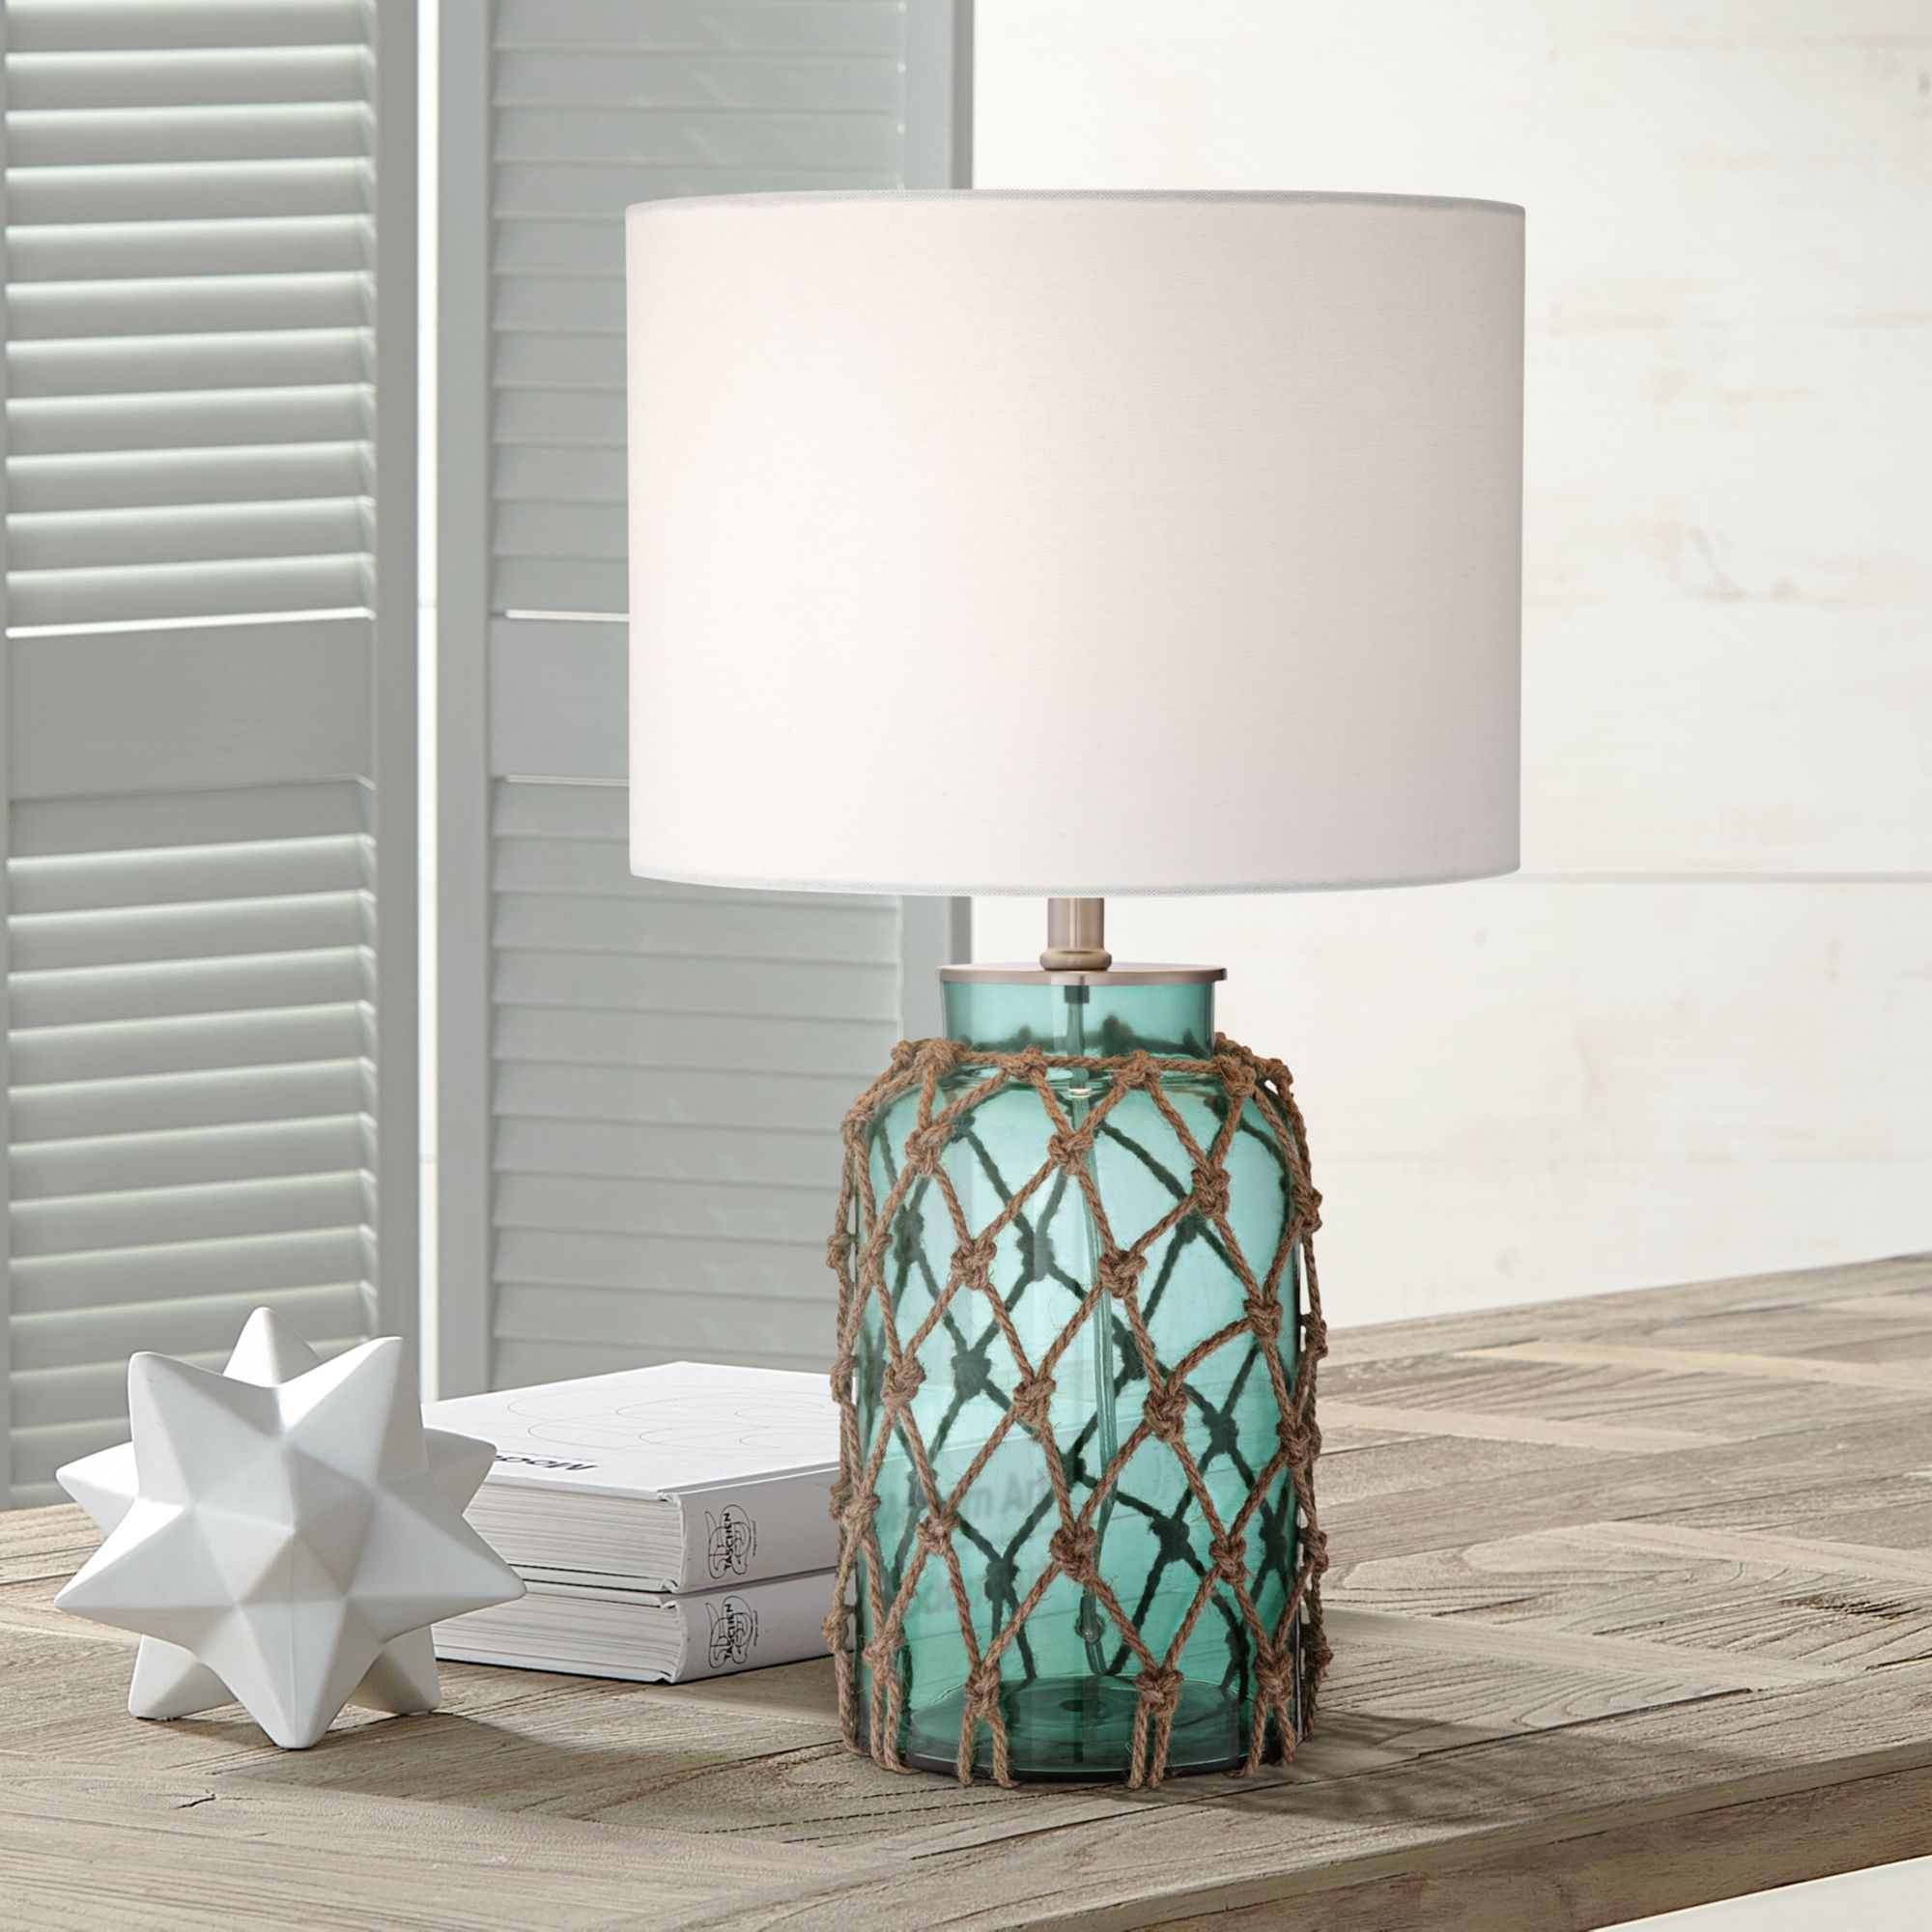 lighting nautical accent table lamp coastal blue green glass off white rope drum shade for living room family bedroom farm legs very narrow rustic end ethan allen couches round